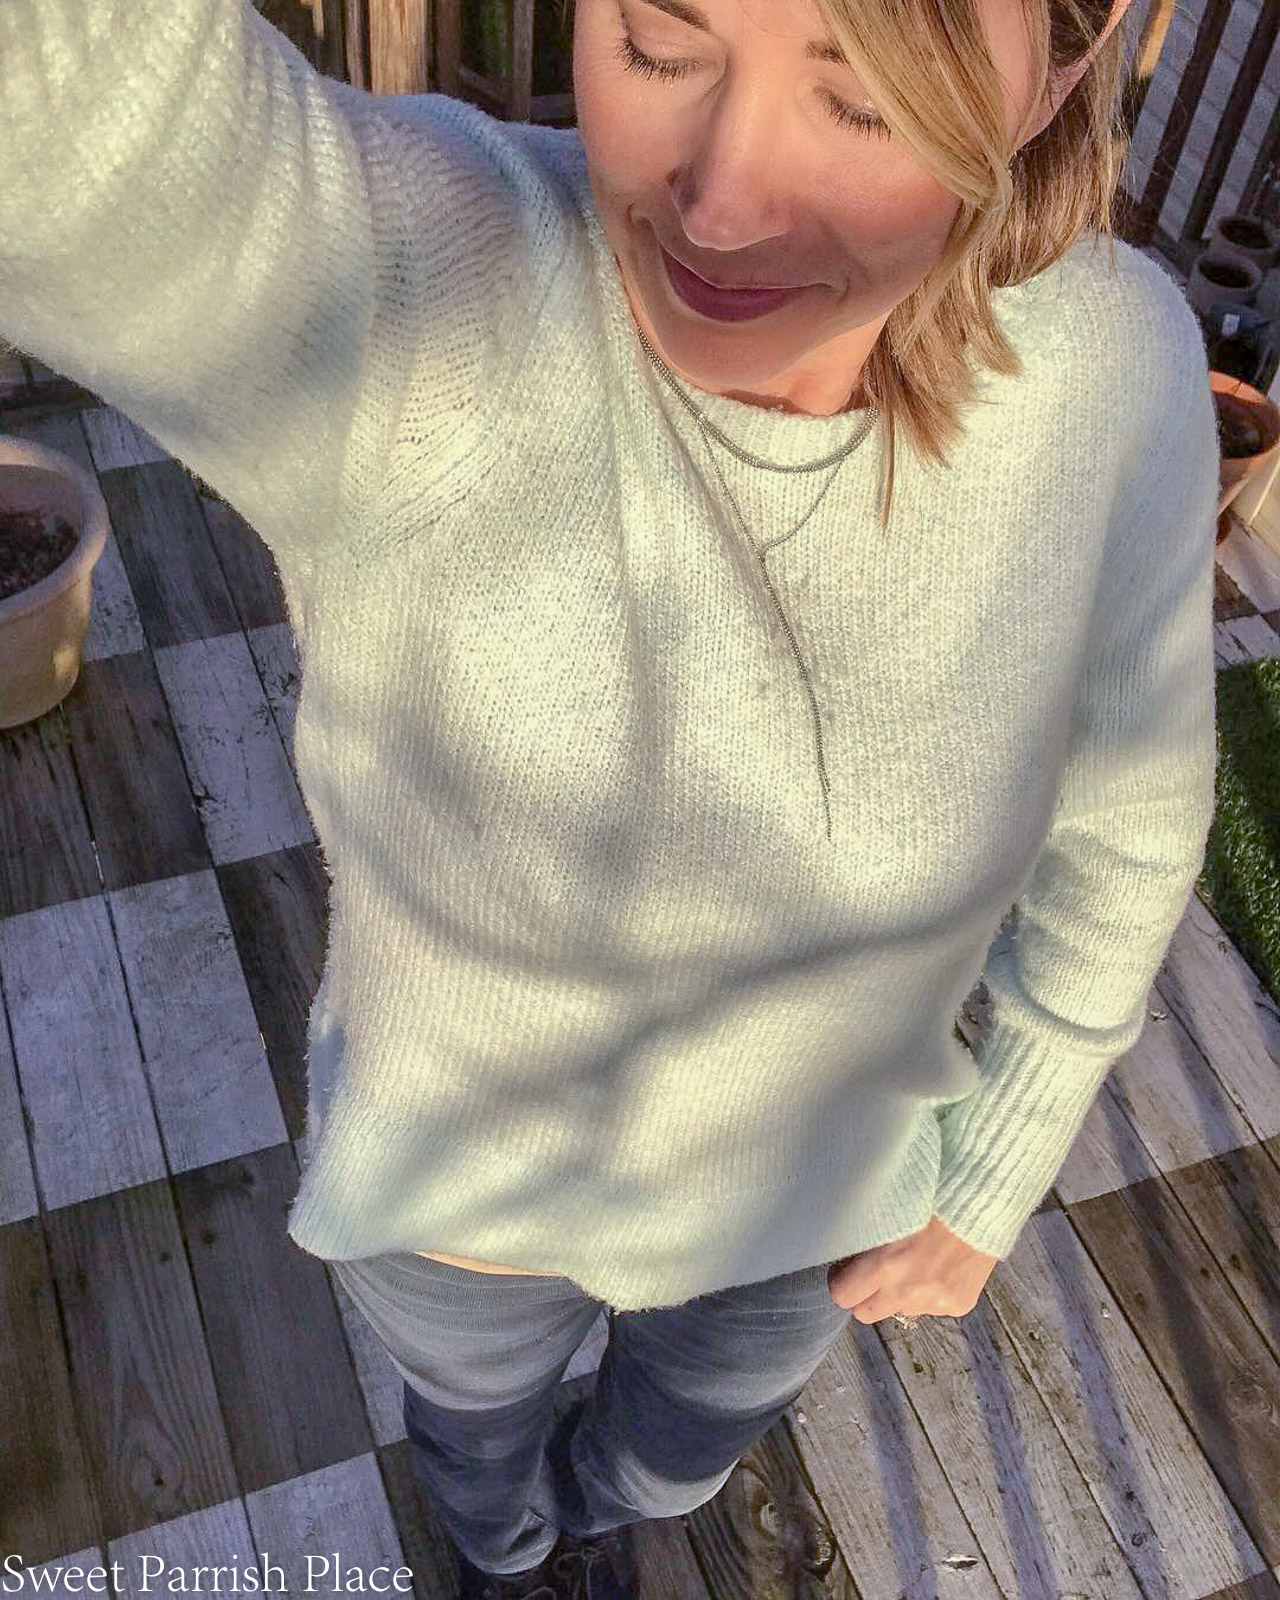 sweater and corduroy pants from Loft